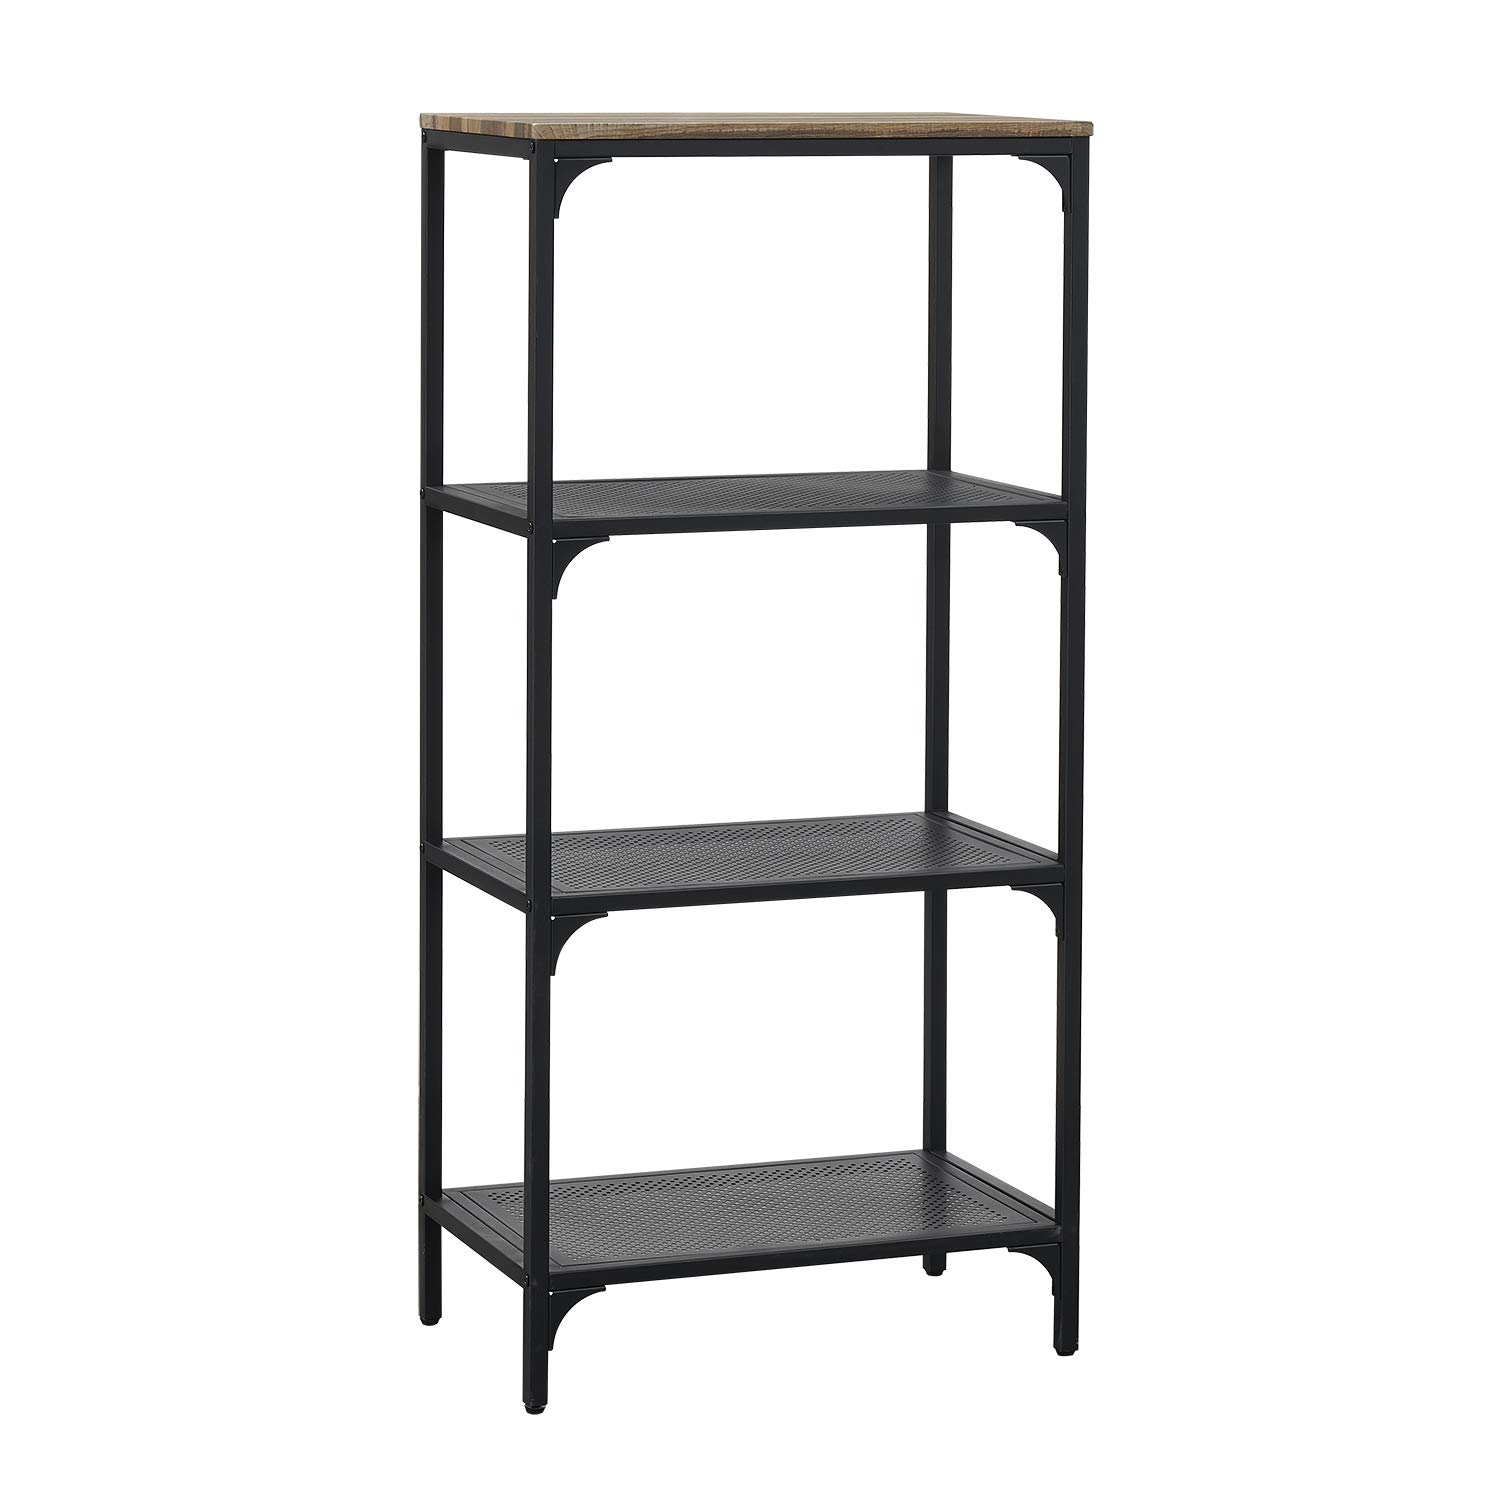 HOMYSHOPY 4-Tier Industrial Bookshelf Open Wide Office Etagere Bookcase Storage Display Shelves for Home and Office, 23.6 W x 14 D x 49.8 H, Vintage Brown